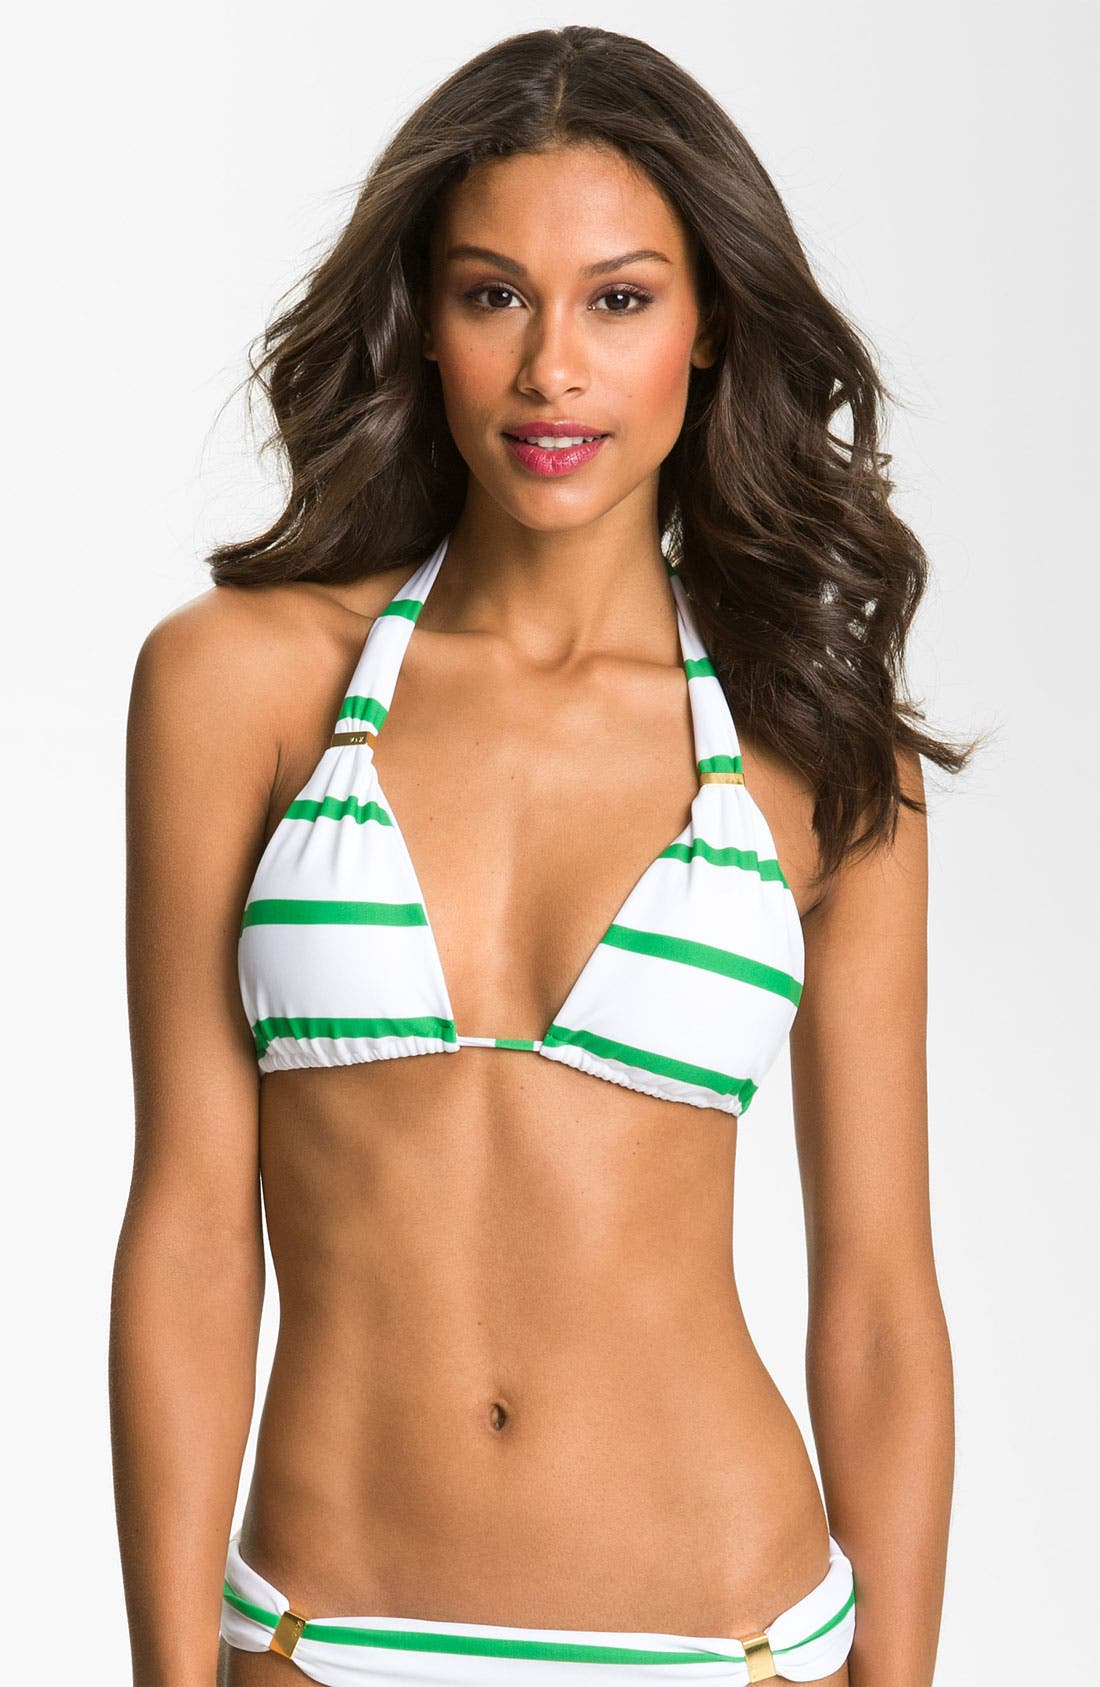 Alternate Image 1 Selected - ViX Swimwear 'Odette Bia' Bikini Top